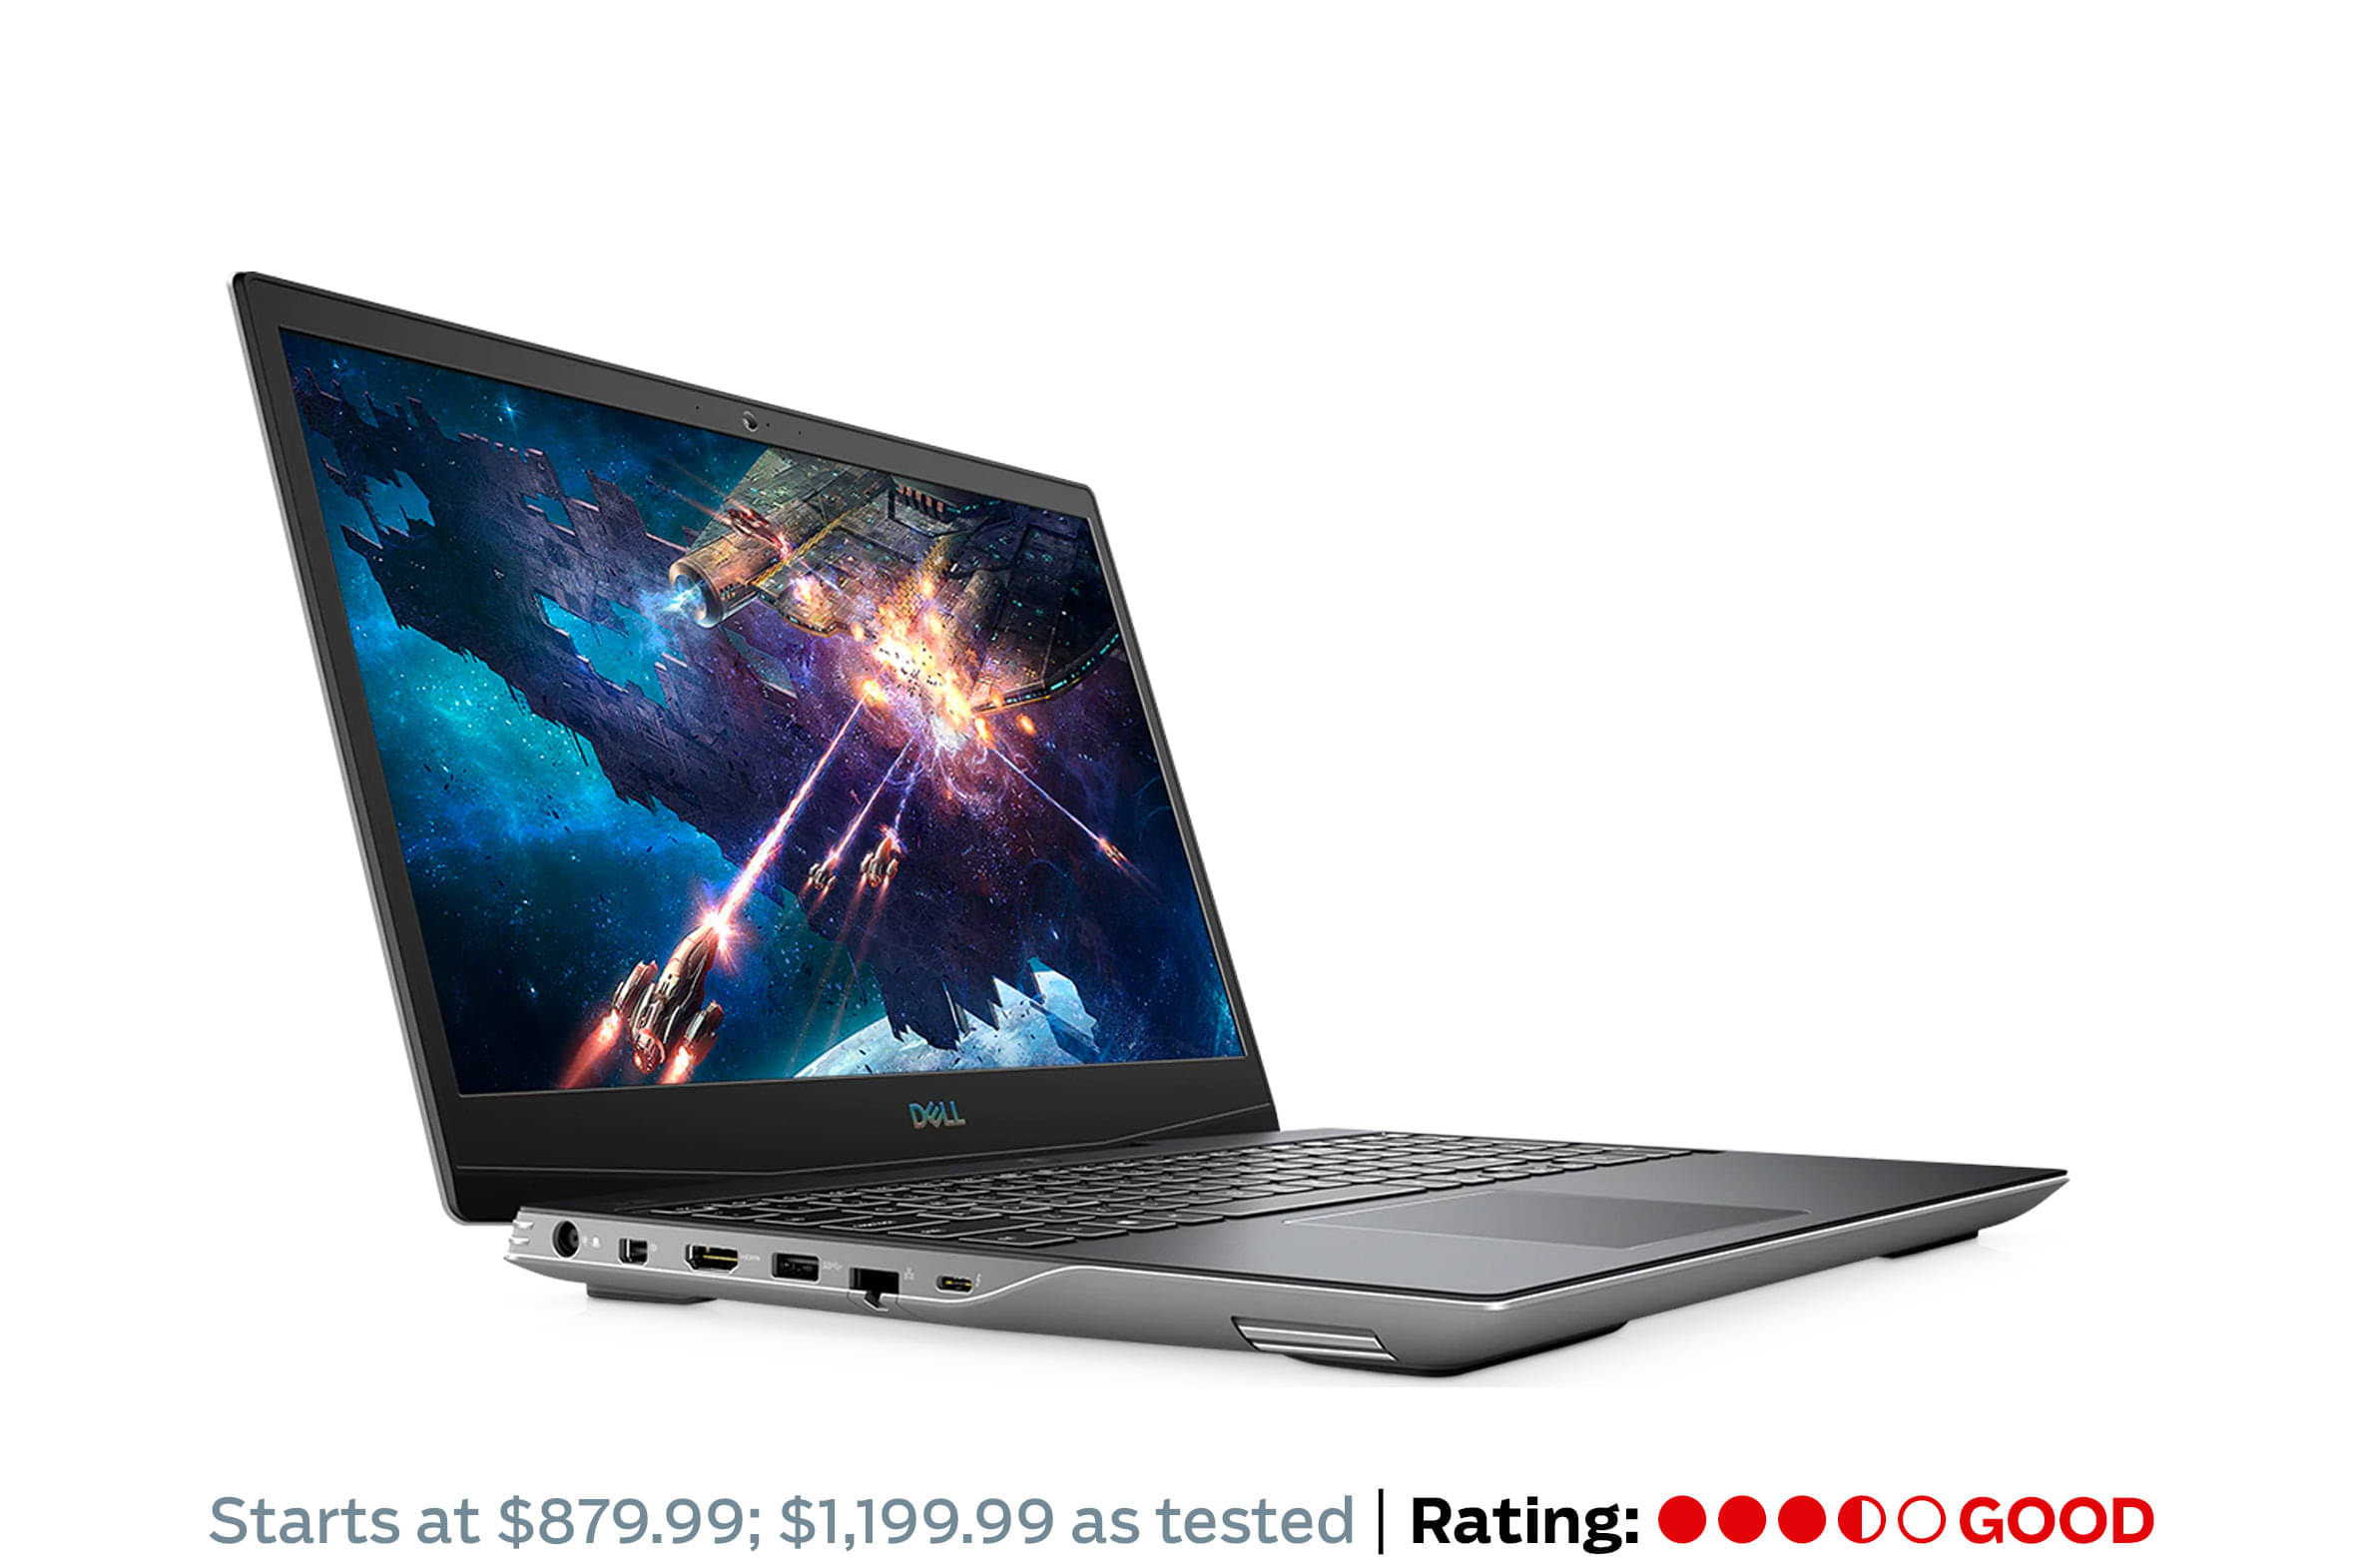 Dell G5 15 SE (2020): A Solid Budget Offering